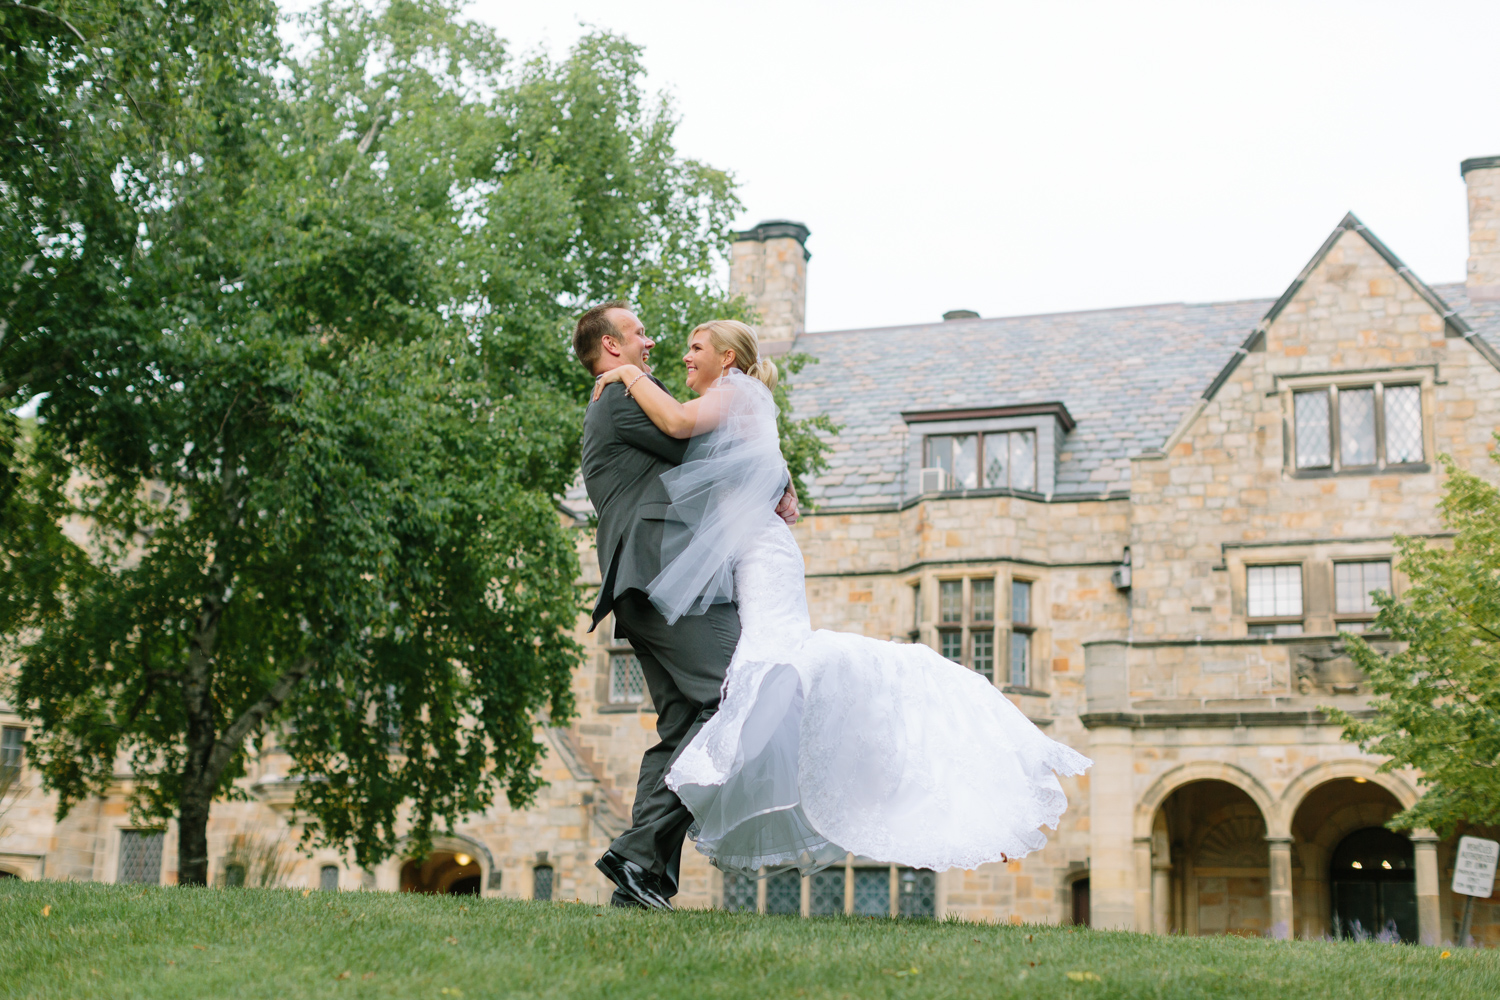 BridalPulse - Golf Lovers' Country Club Wedding | couple just married